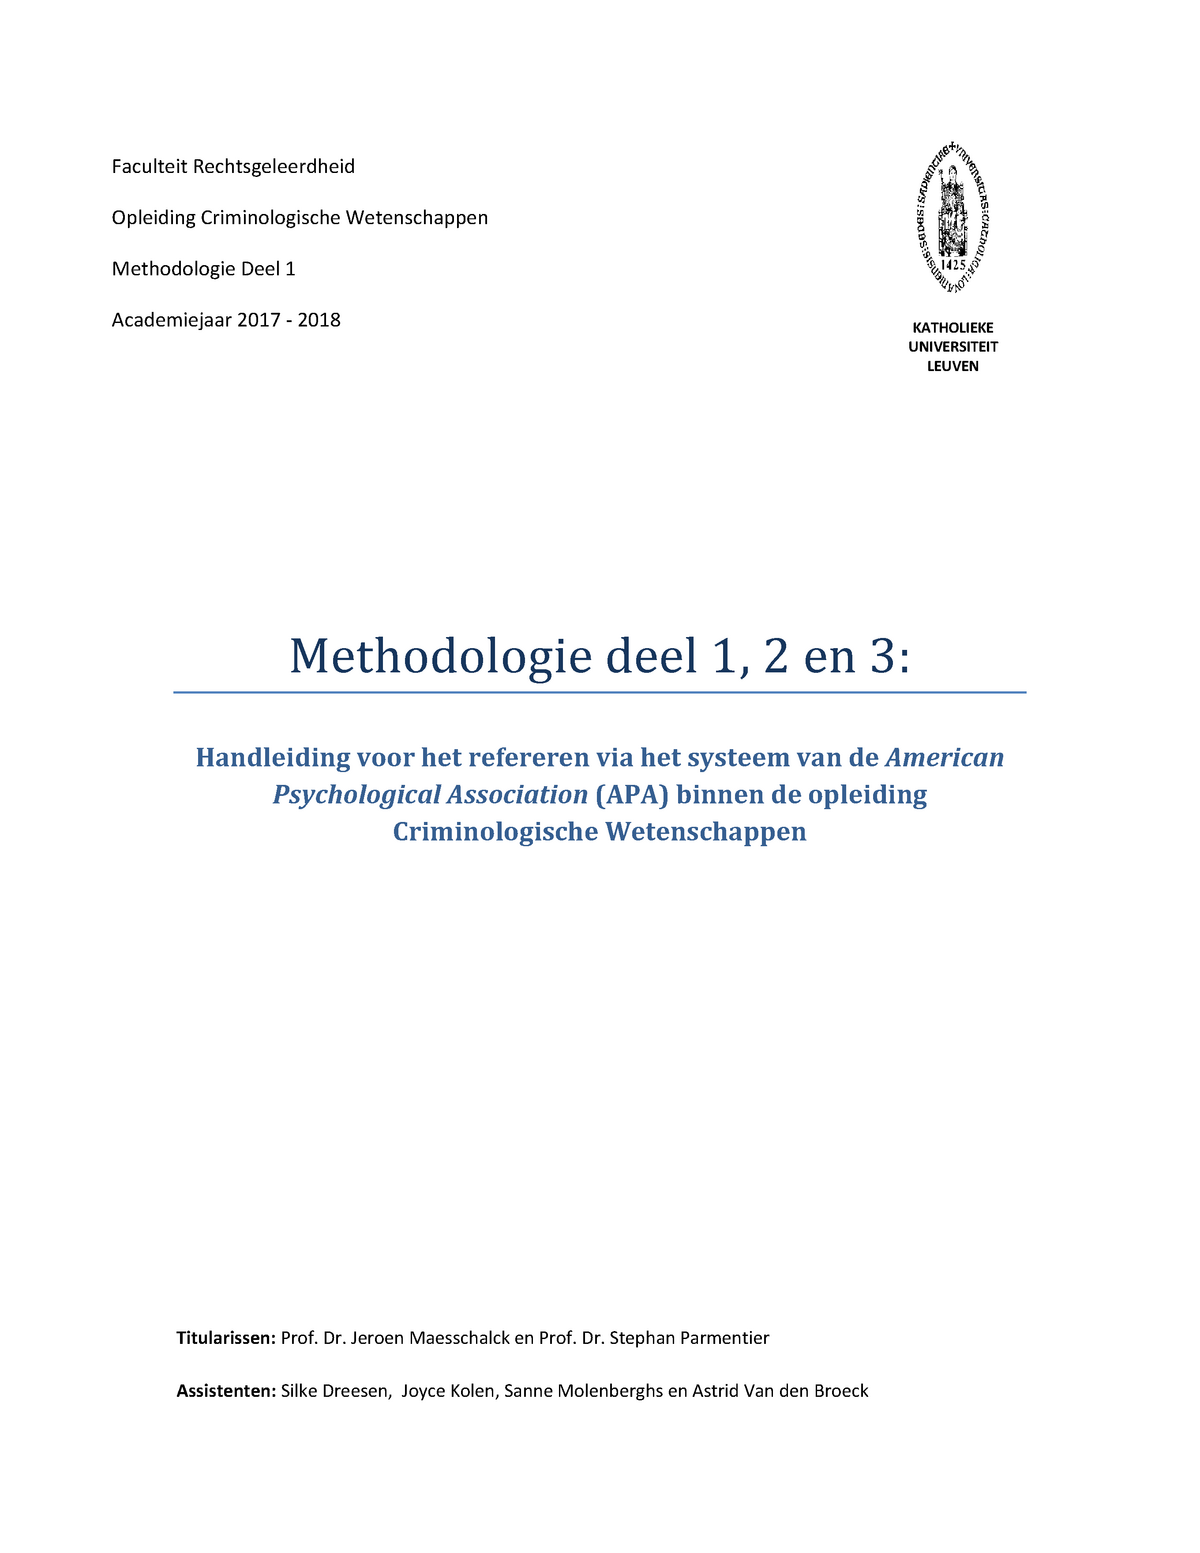 thesis kuleuven criminologie